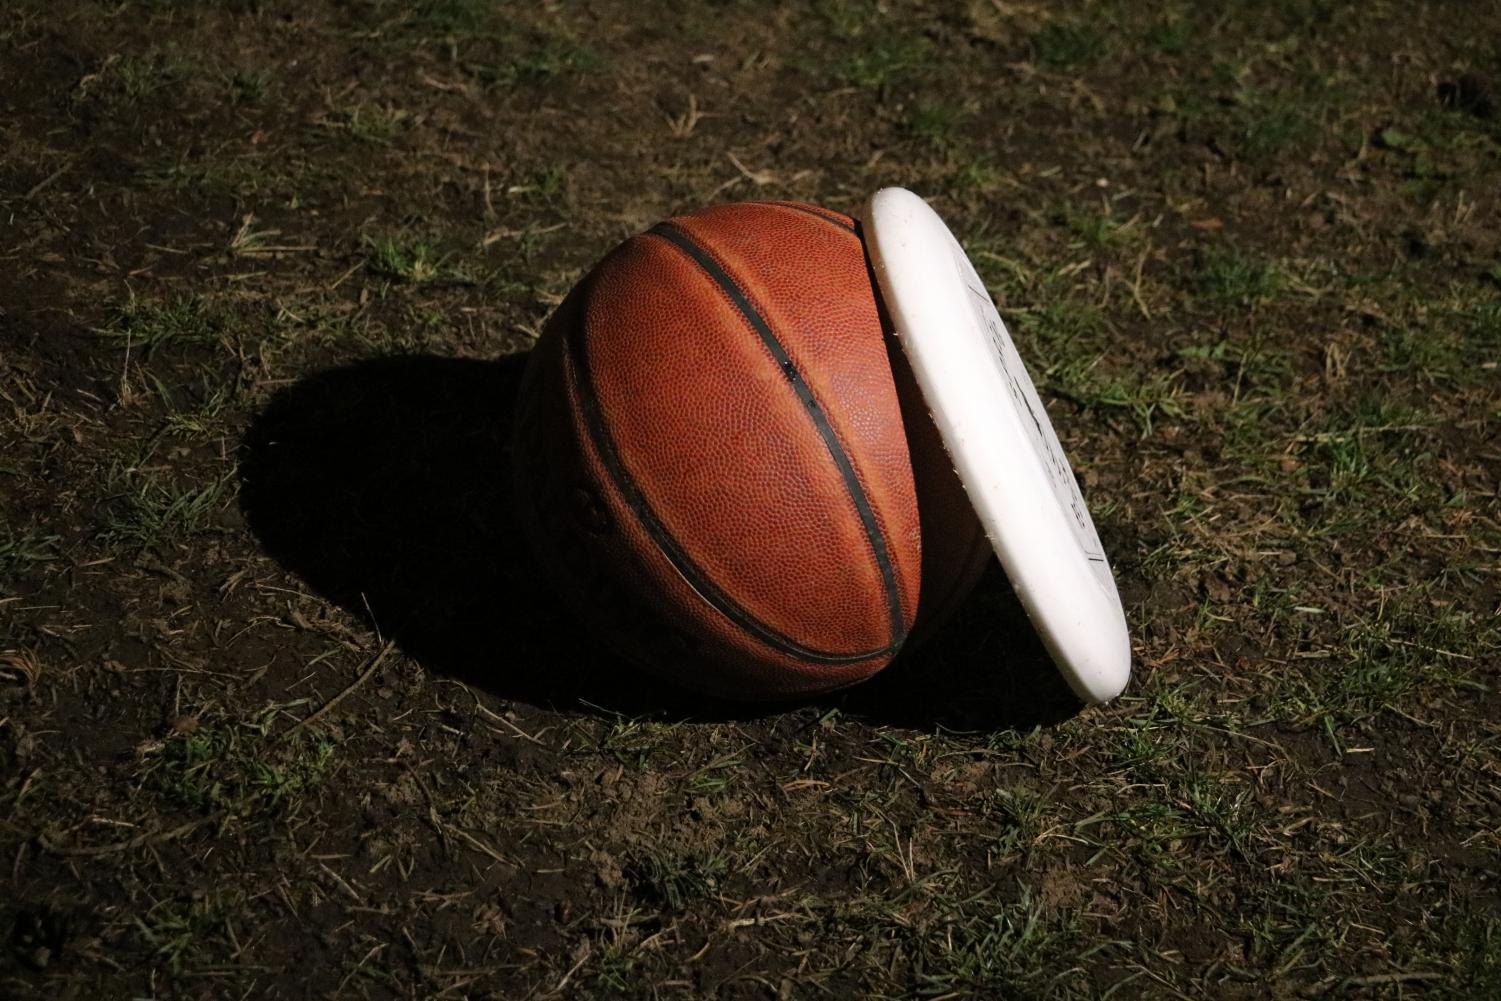 Student Article Prompts Reckoning in Sports Biases